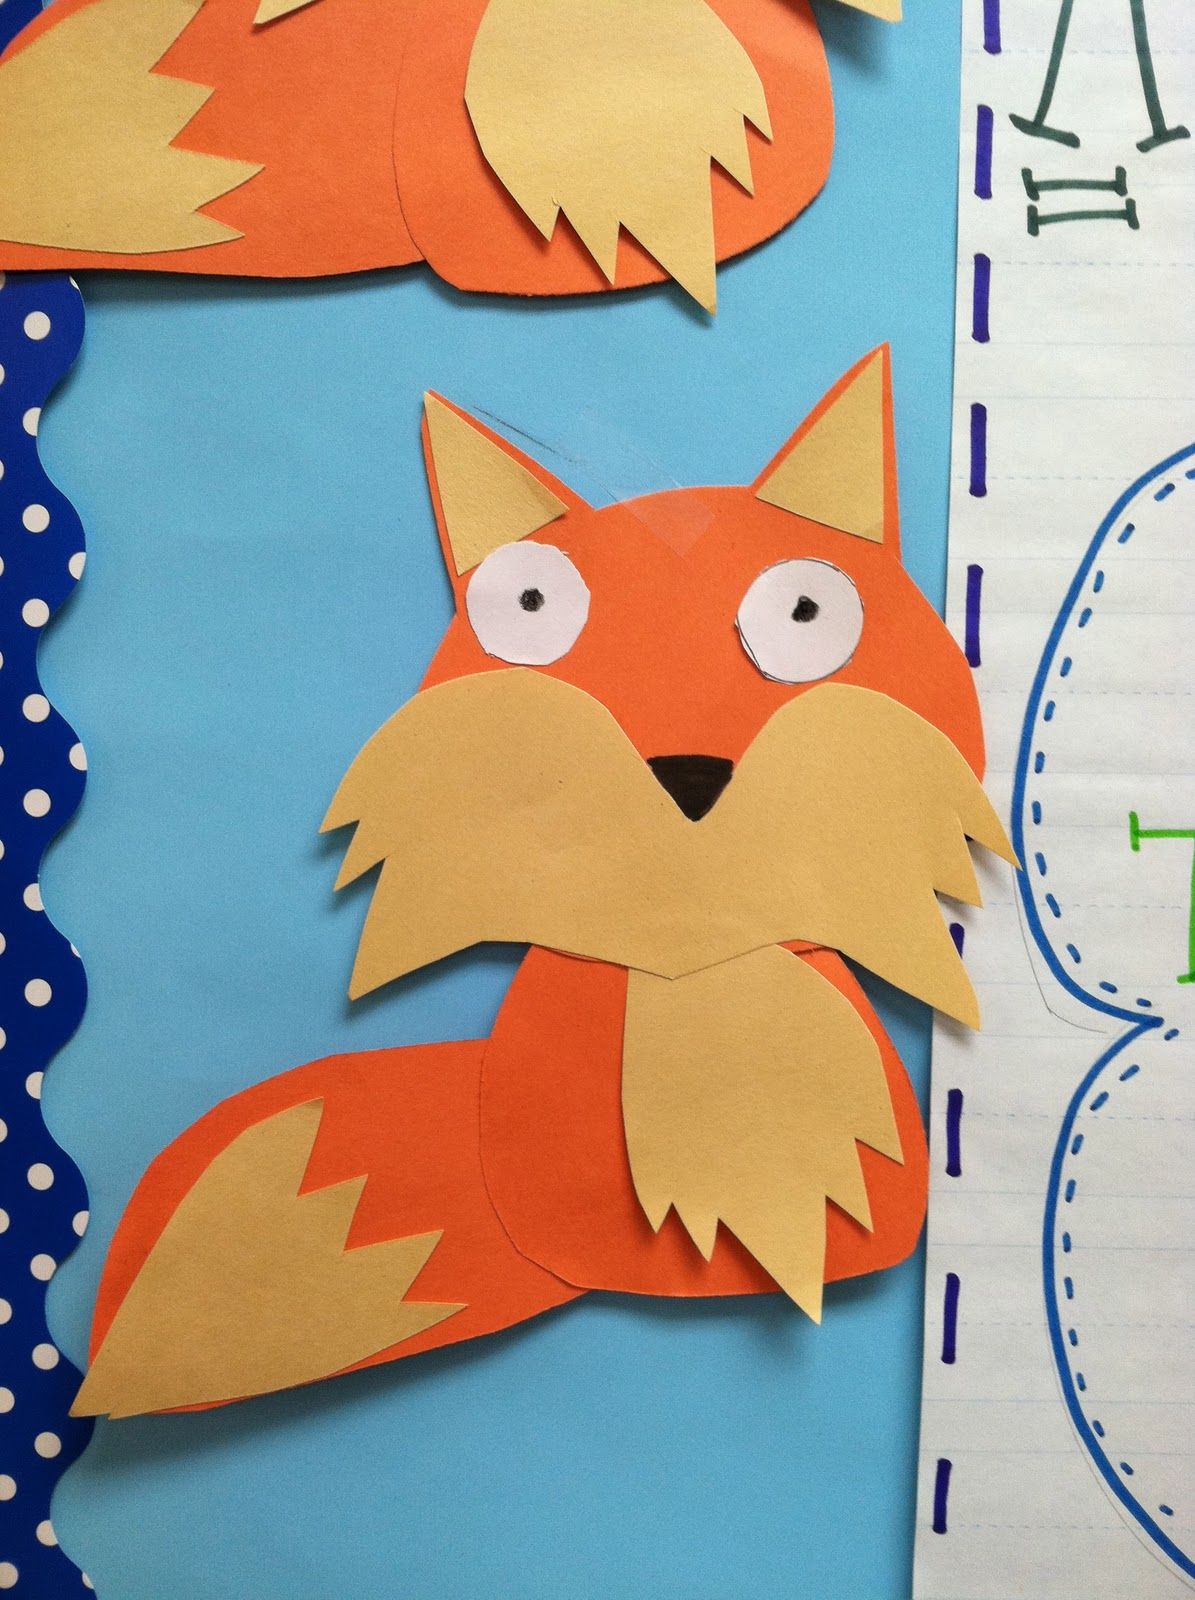 Life in first grade a fox and a kit scarecrows and for Mr art design